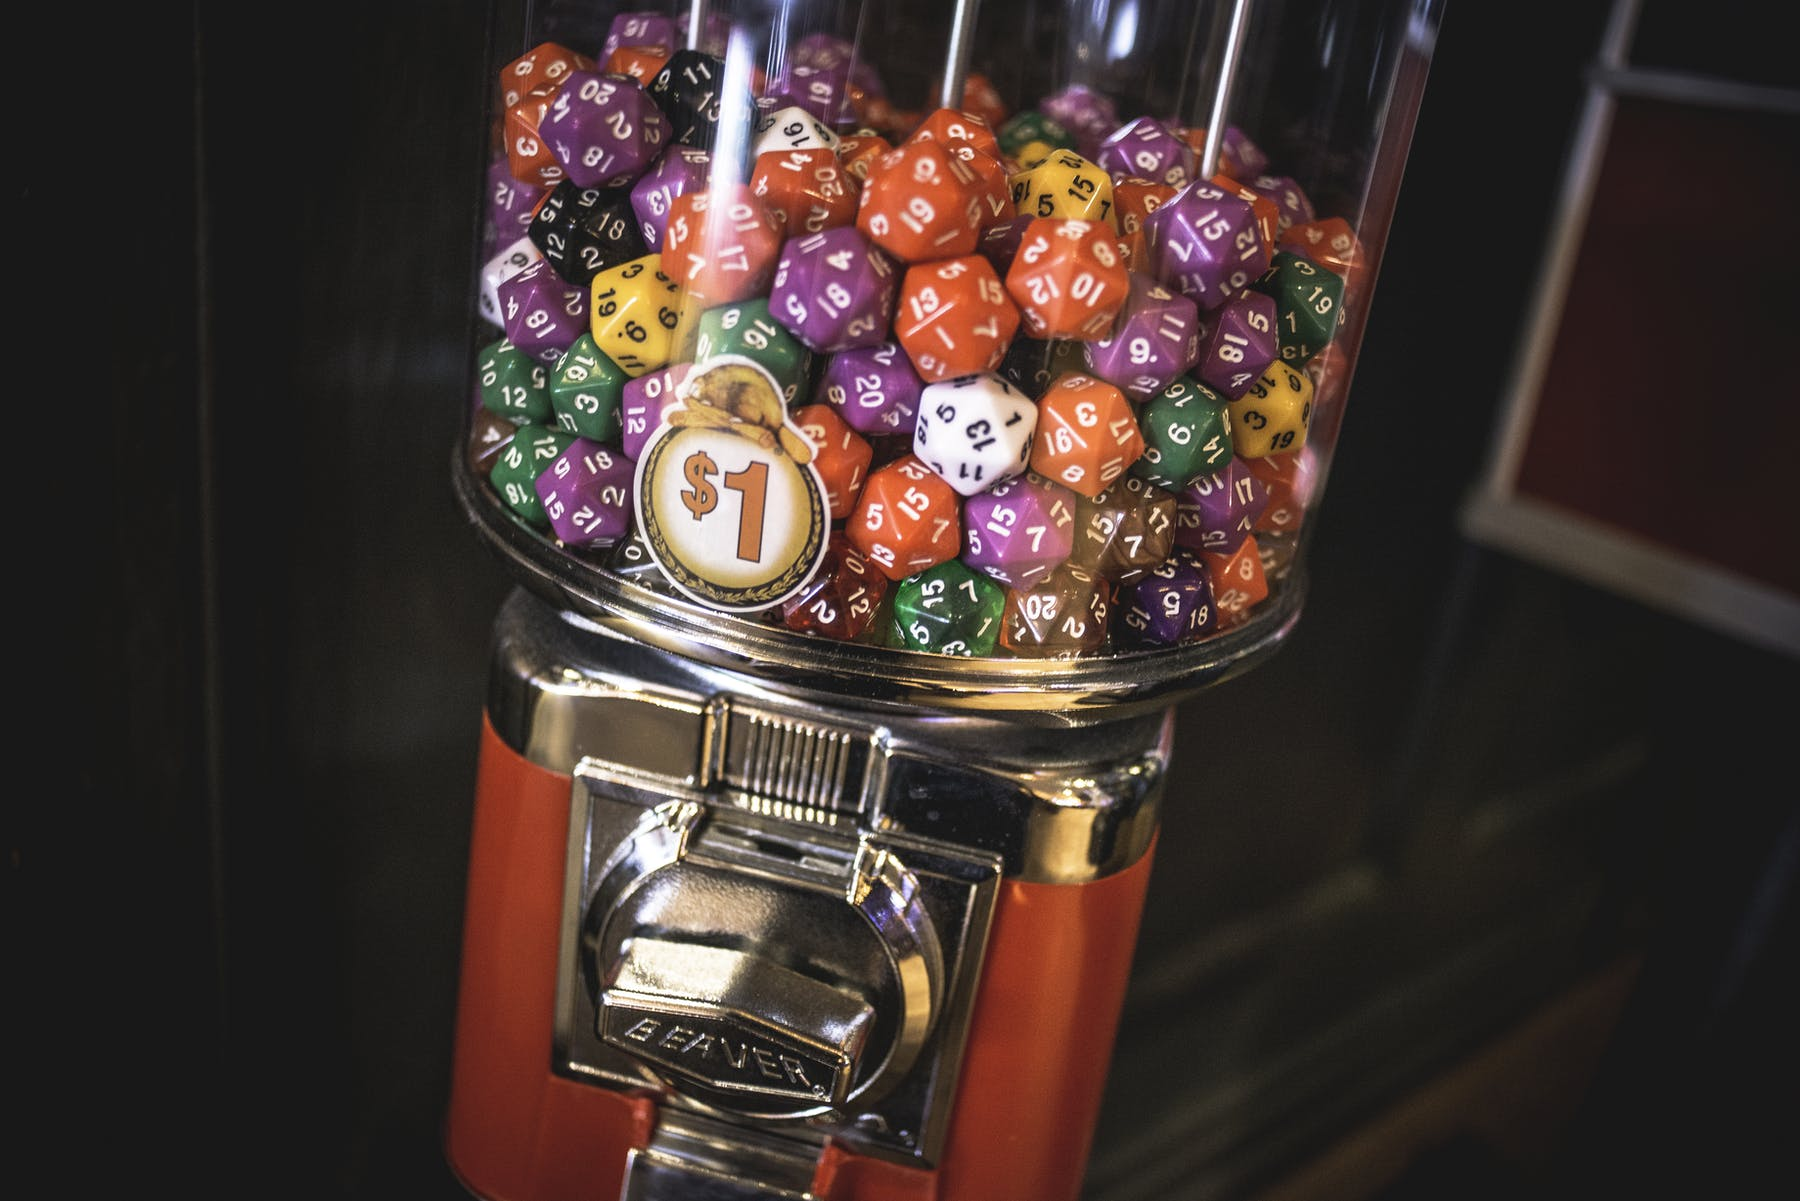 D20 vending machine